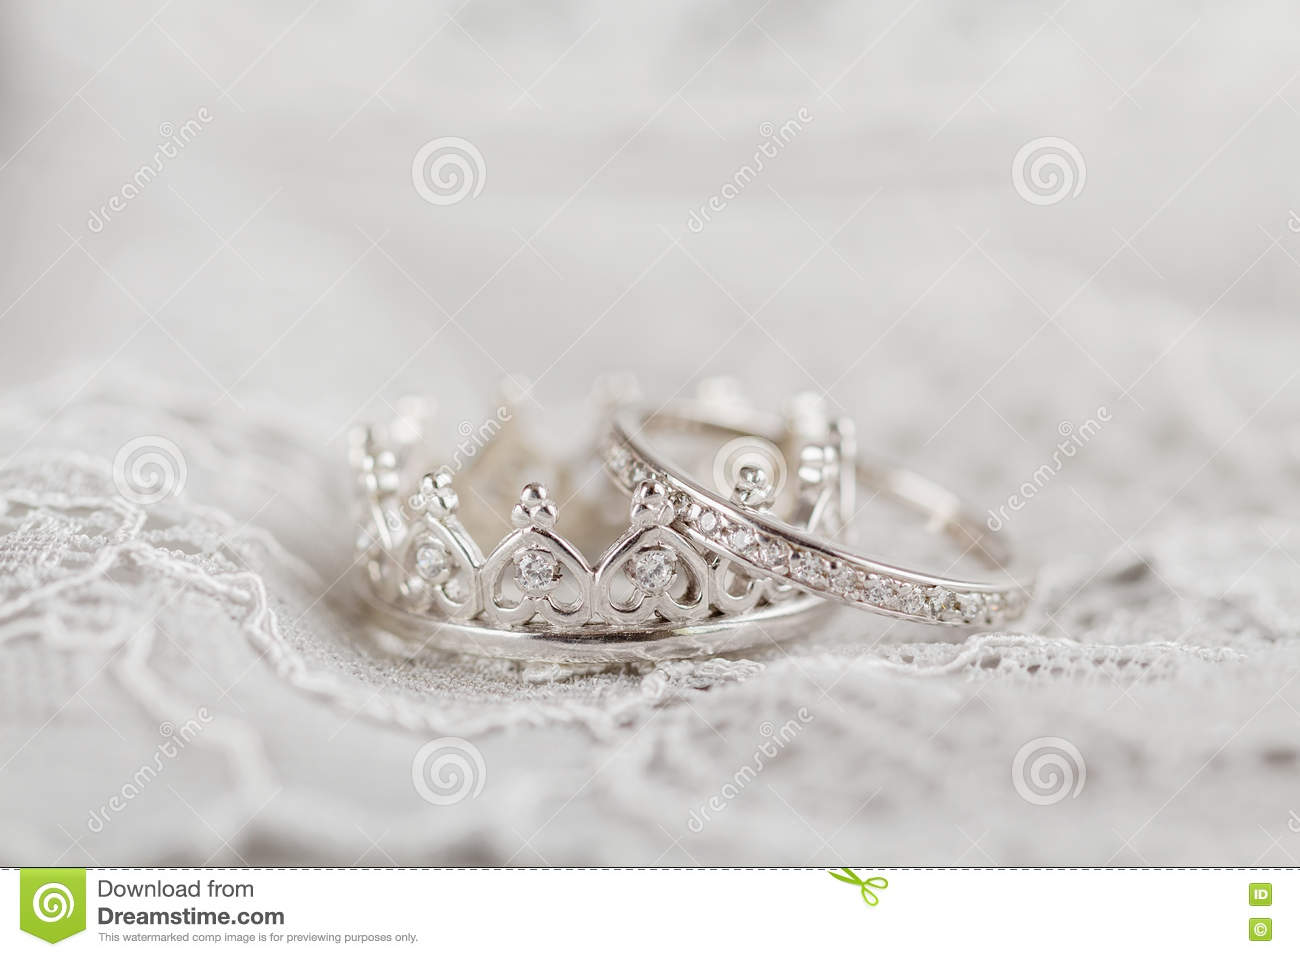 stock photo silver crown wedding rings shape gray background shallow focus image crown wedding rings Silver crown wedding rings